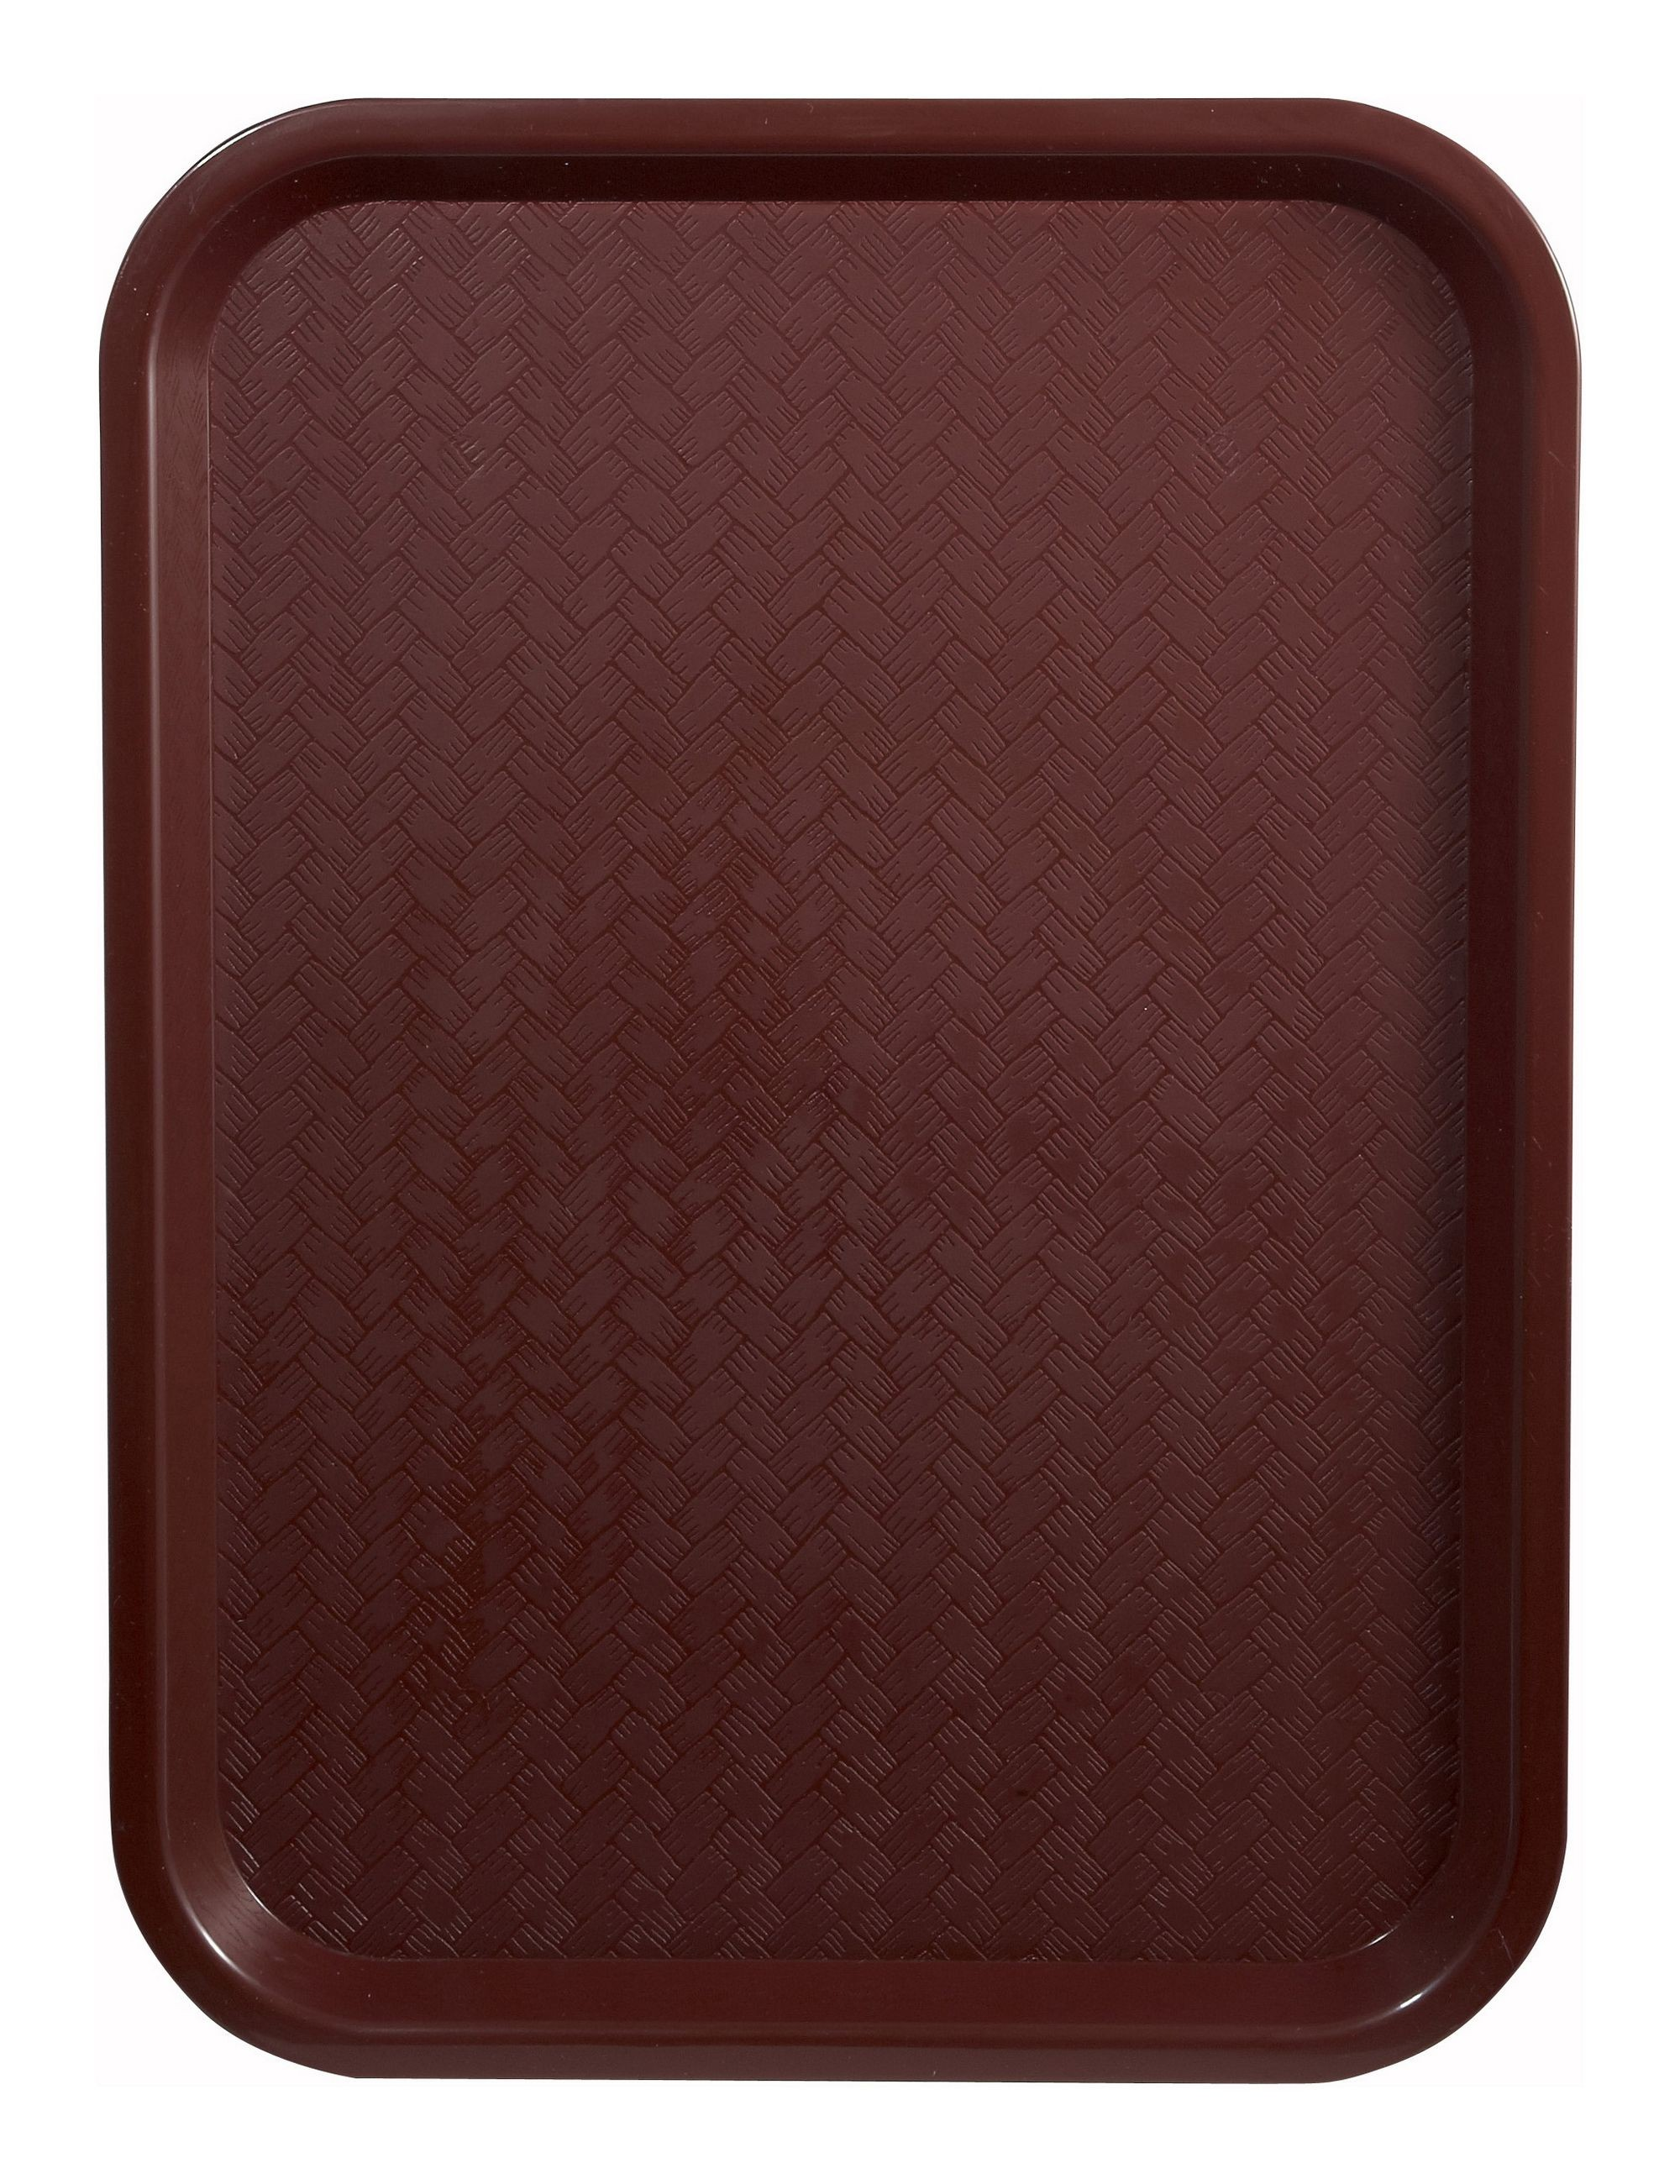 "Winco fft-1418u Burgundy Plastic Fast Food Tray 14"" x 18"""